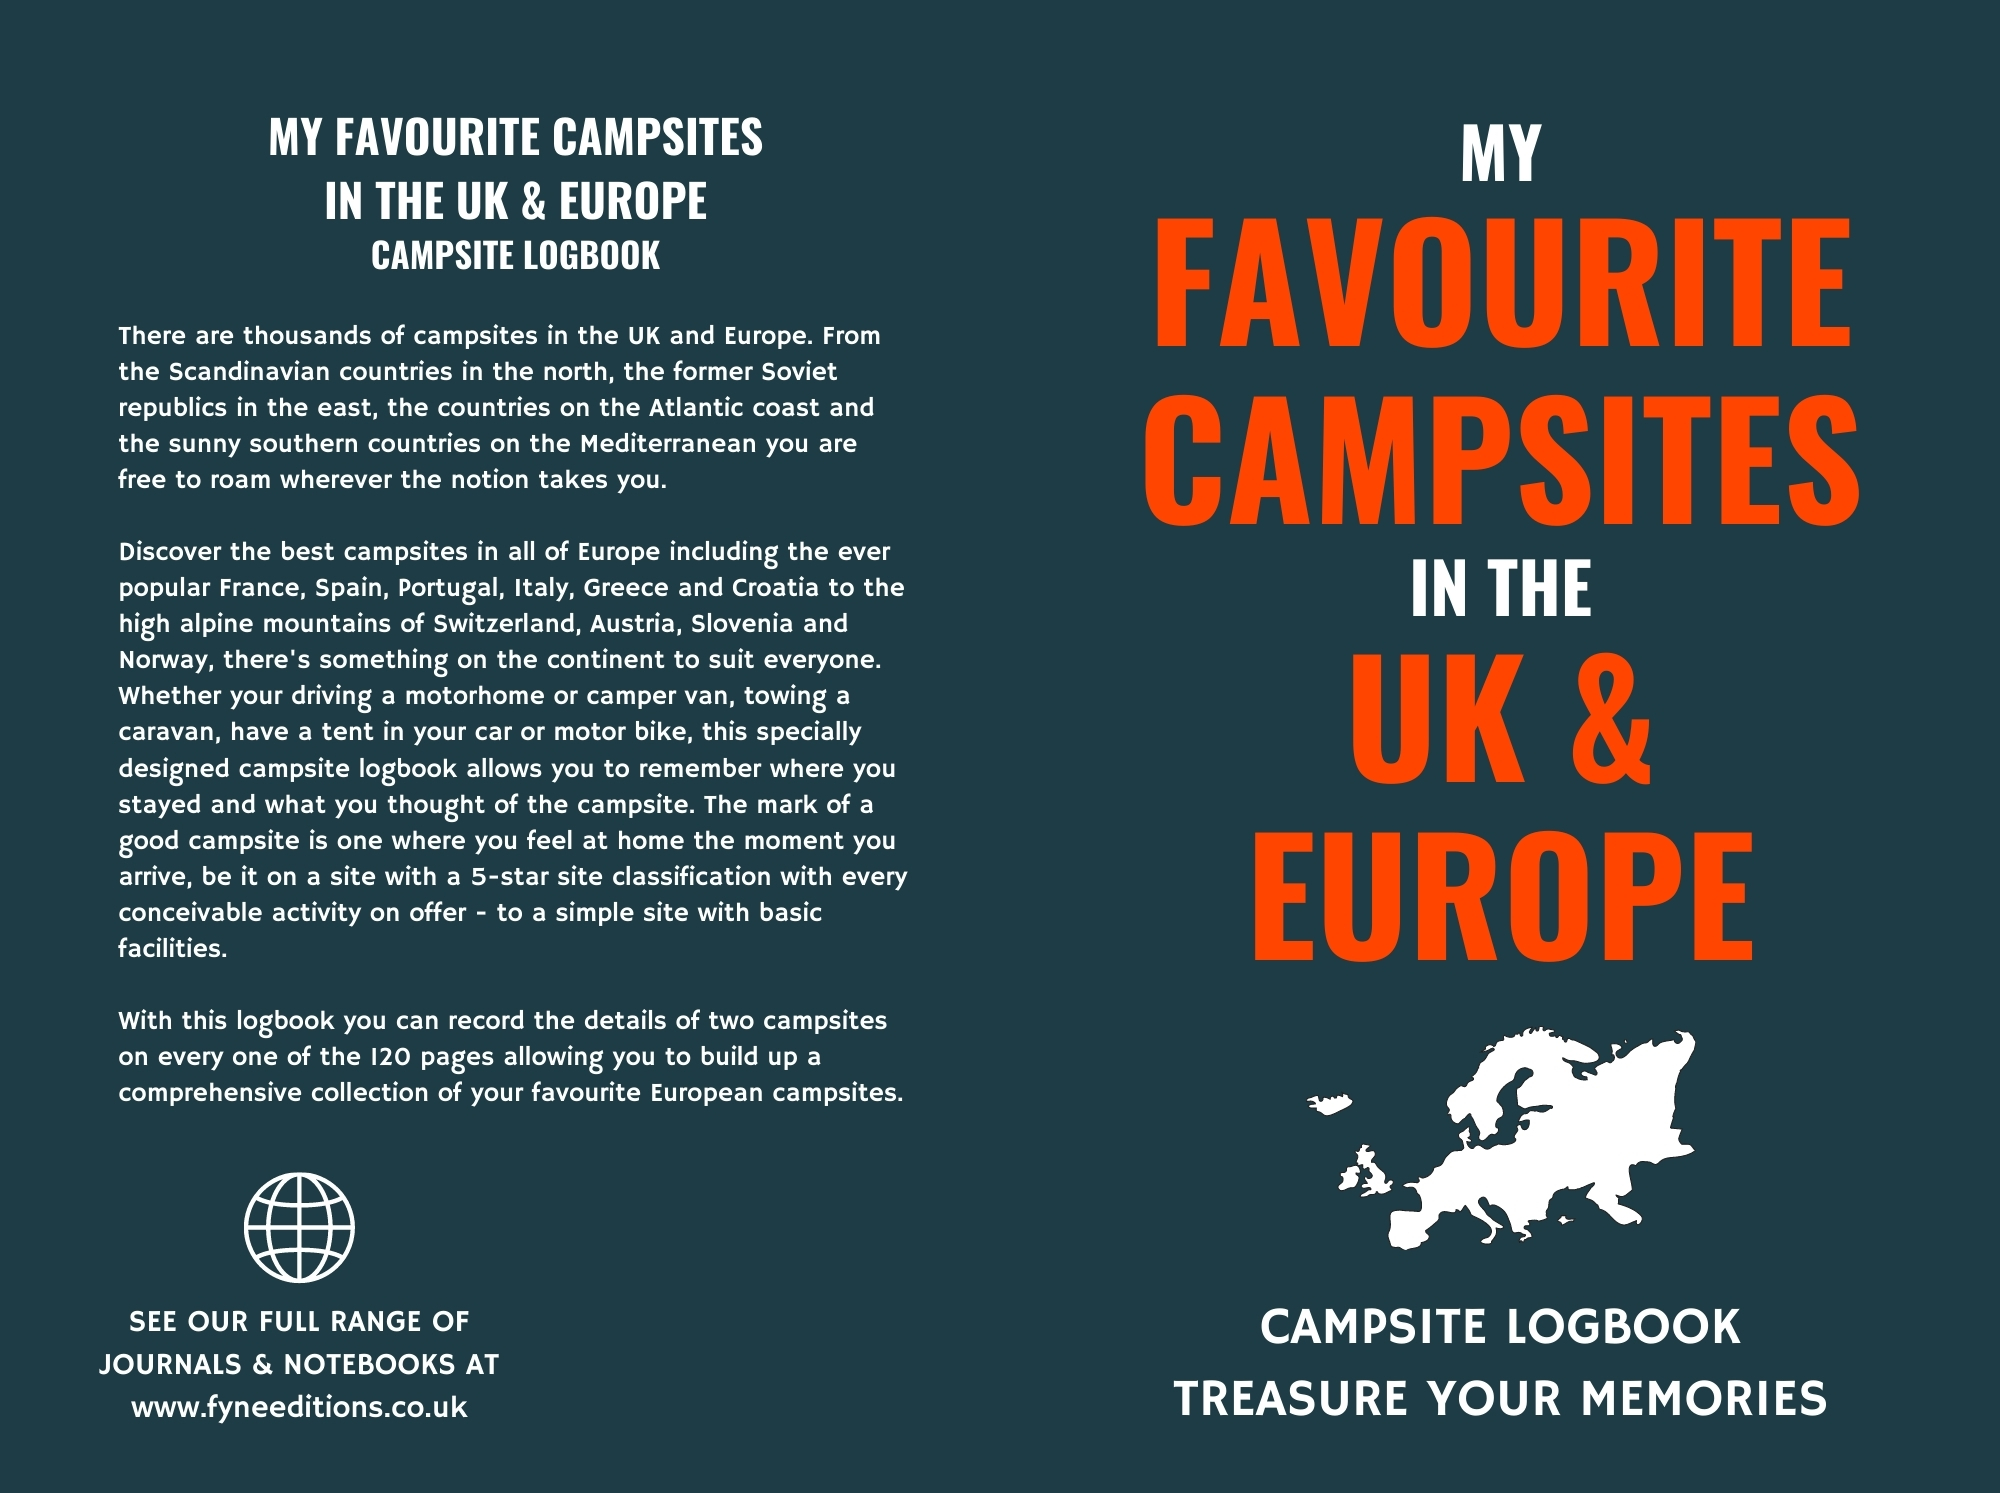 My Favourite Campsites in the UK & Europe - Logbook